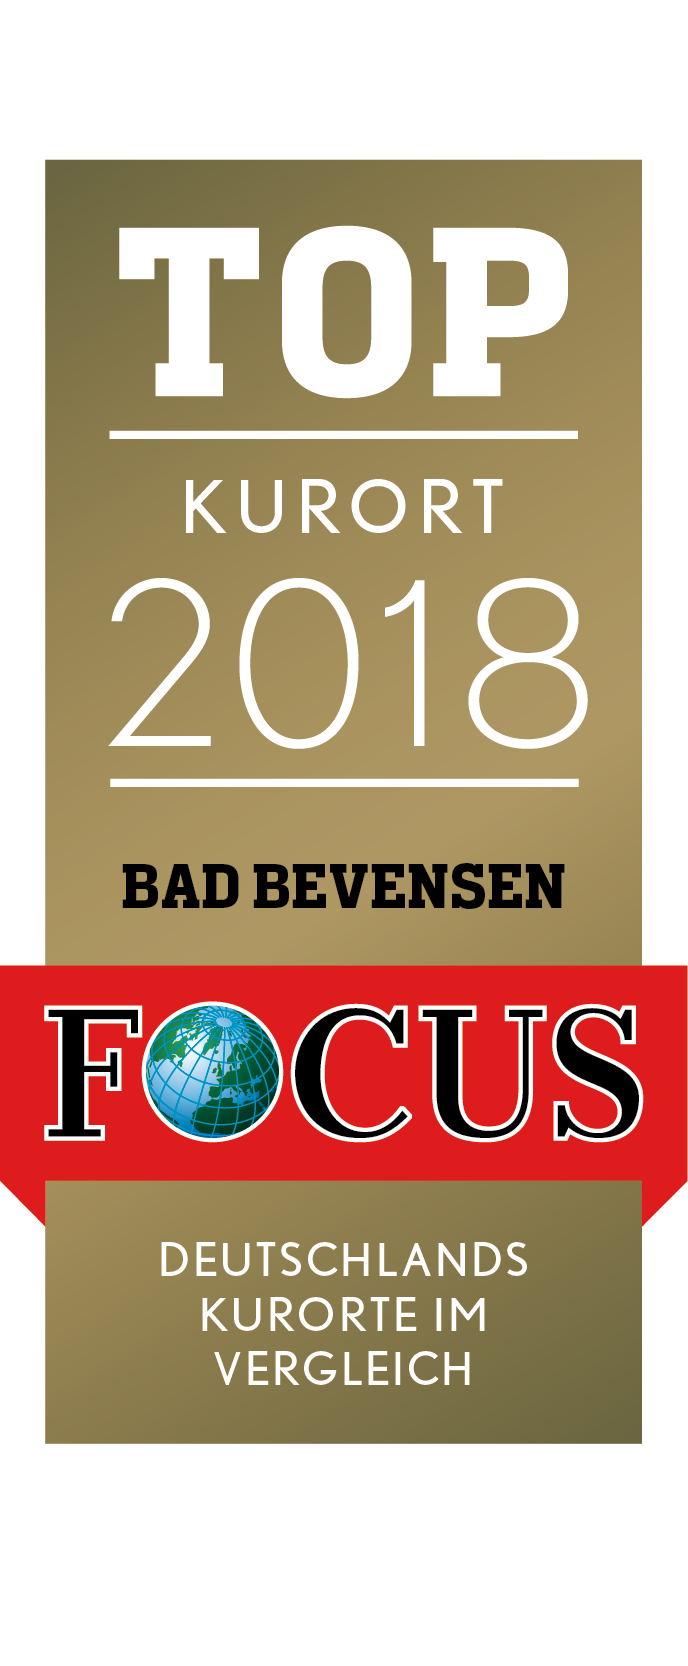 45FCG TOP Kurorte 2018 Bad Bevensen